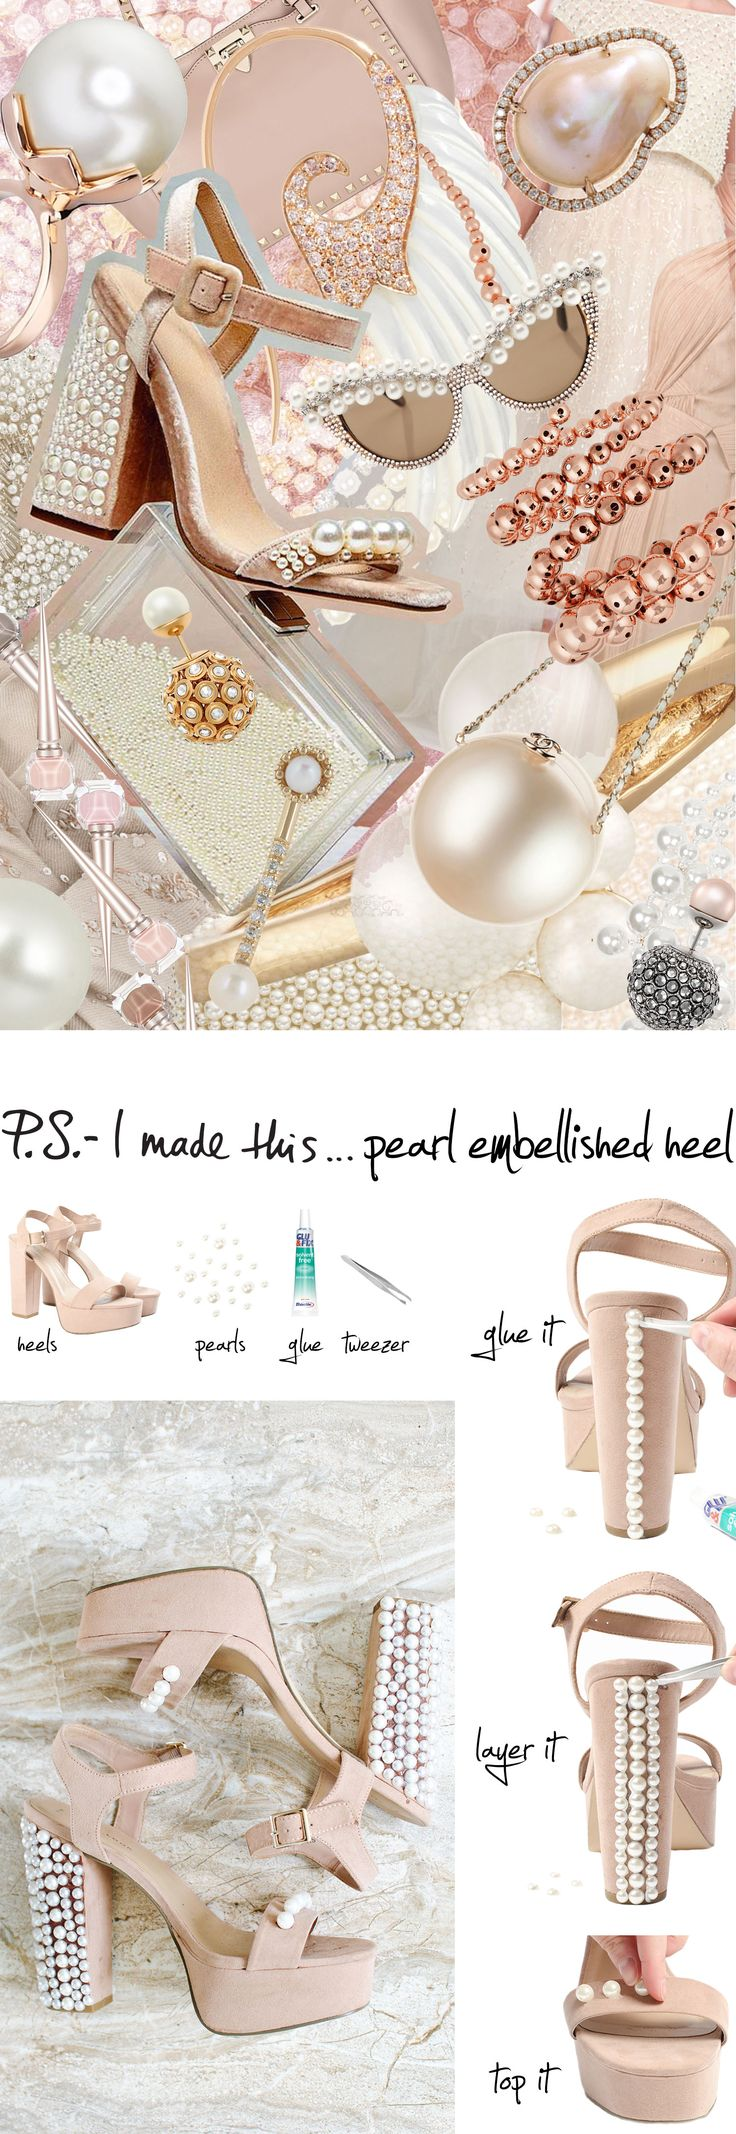 P.S.-I made this...Pearl Embellished Heel #PSIMADETHIS #DIY